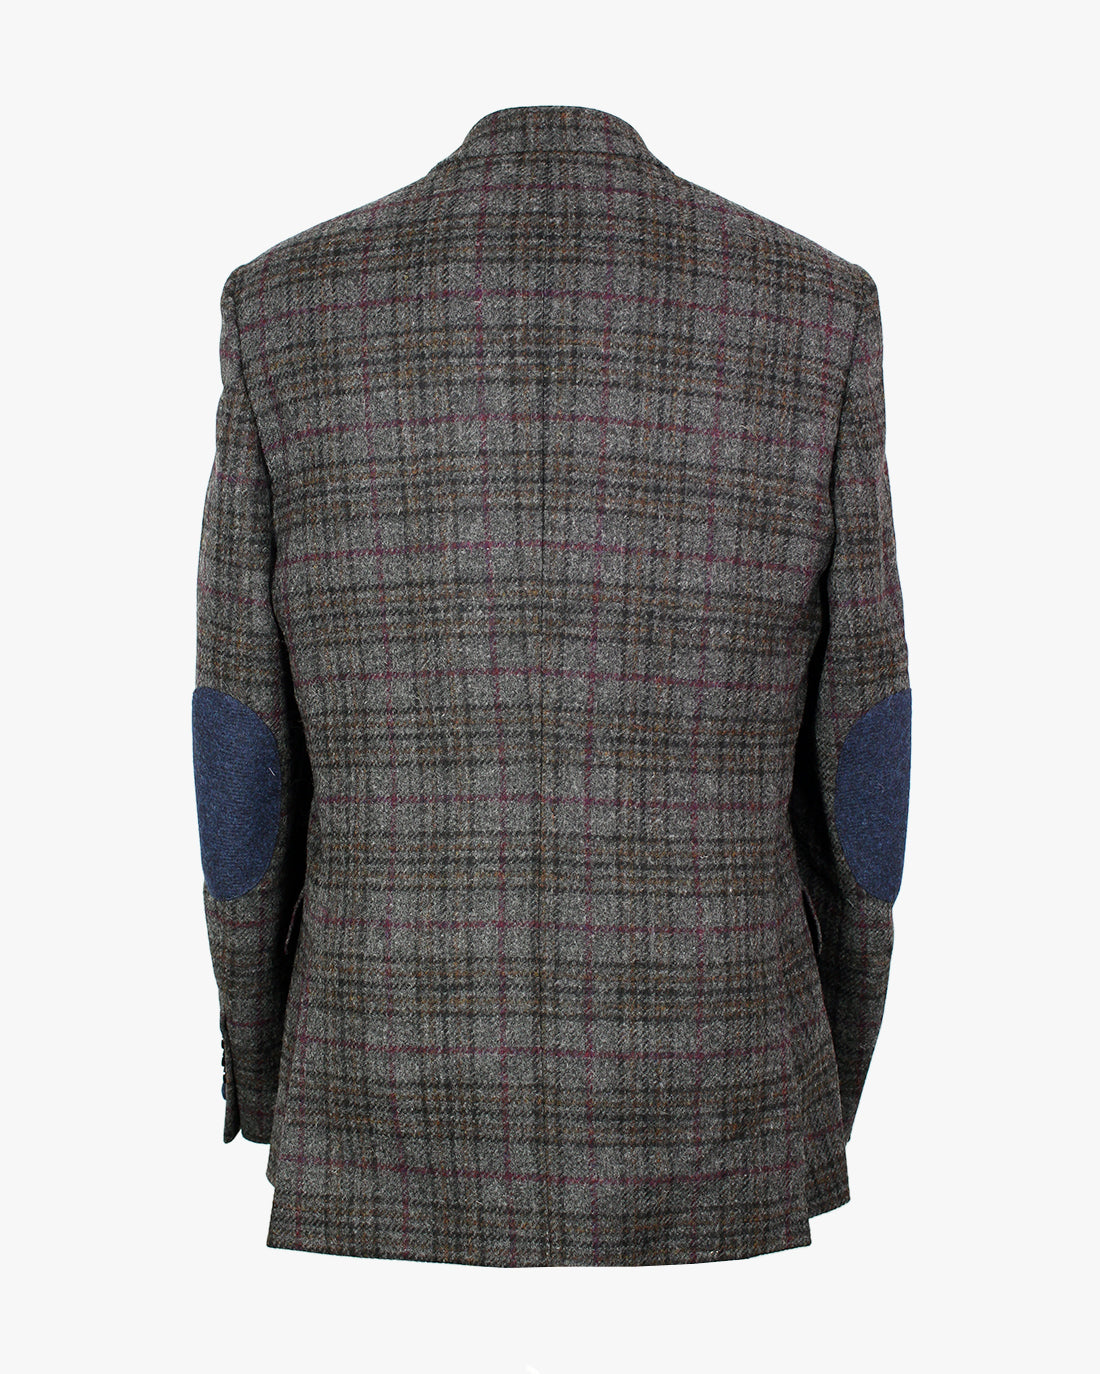 Grey Windowpane Overcheck Reginald Jacket - Holland Esquire